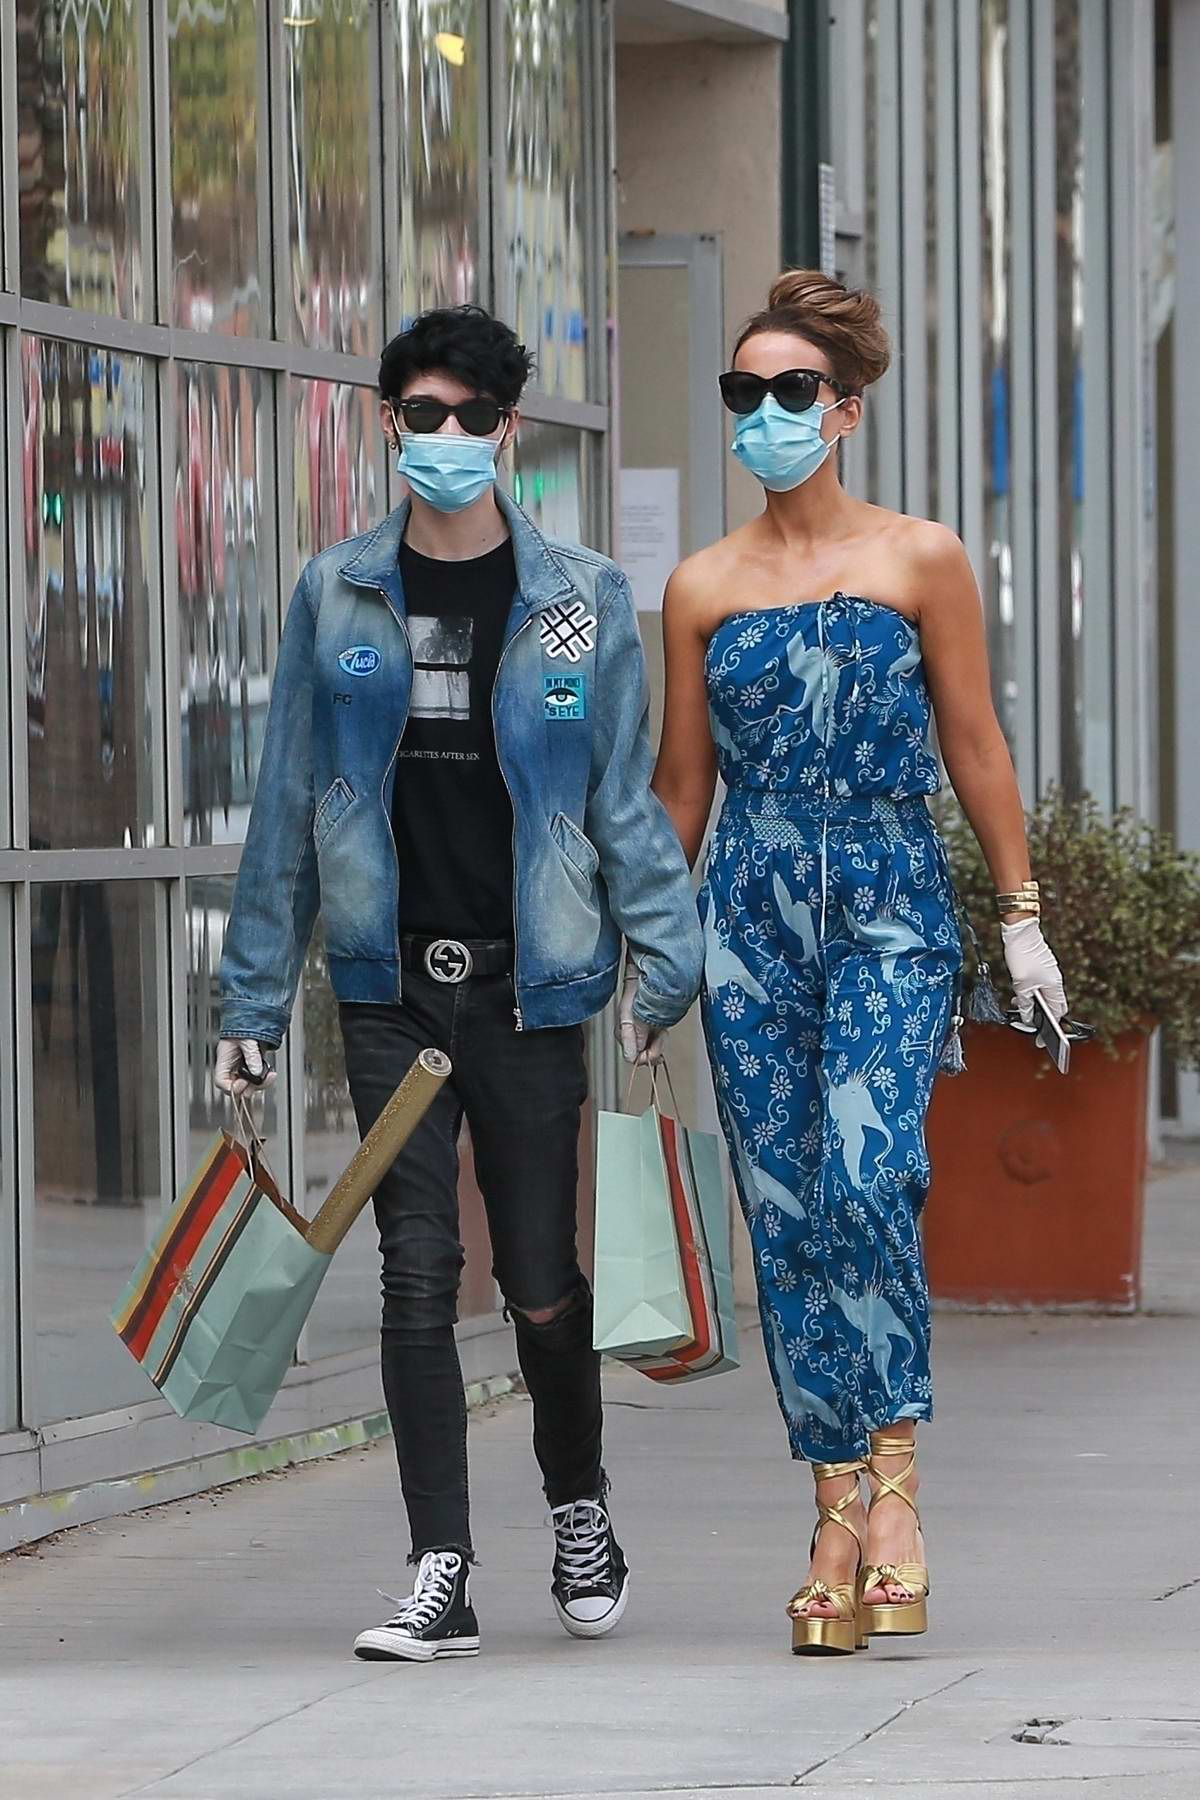 Kate Beckinsale looks stylish in a blue jumpsuit while out for some shopping with Goody Grace in Santa Monica, California